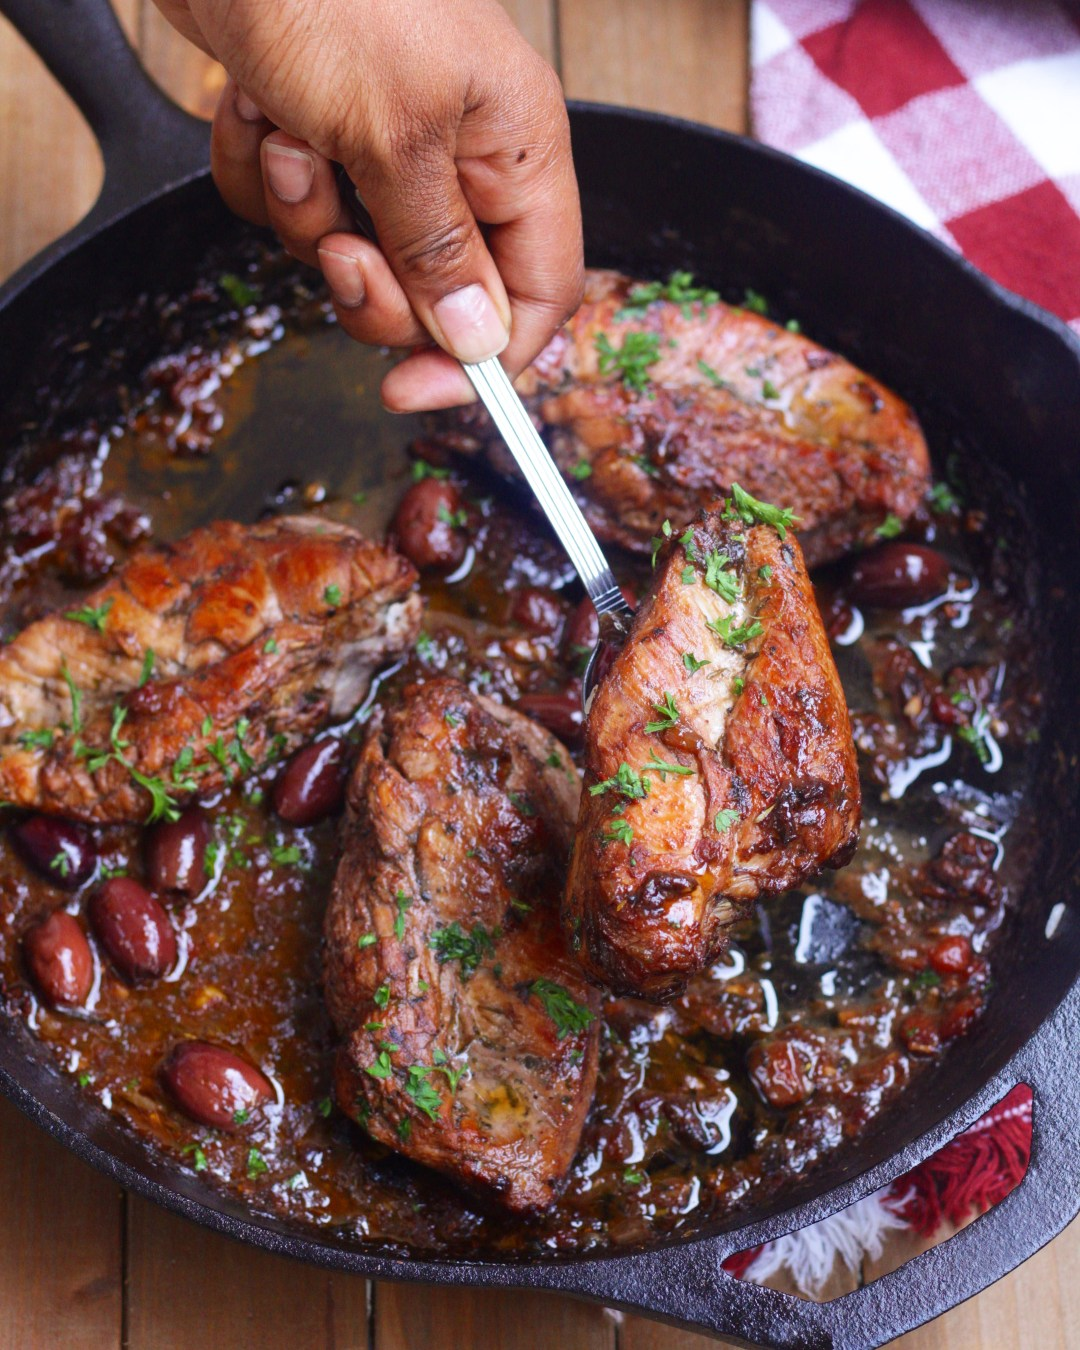 What Dinner Can I Make With Chicken: Chicken Provencal- French Fall Inspired Dinner